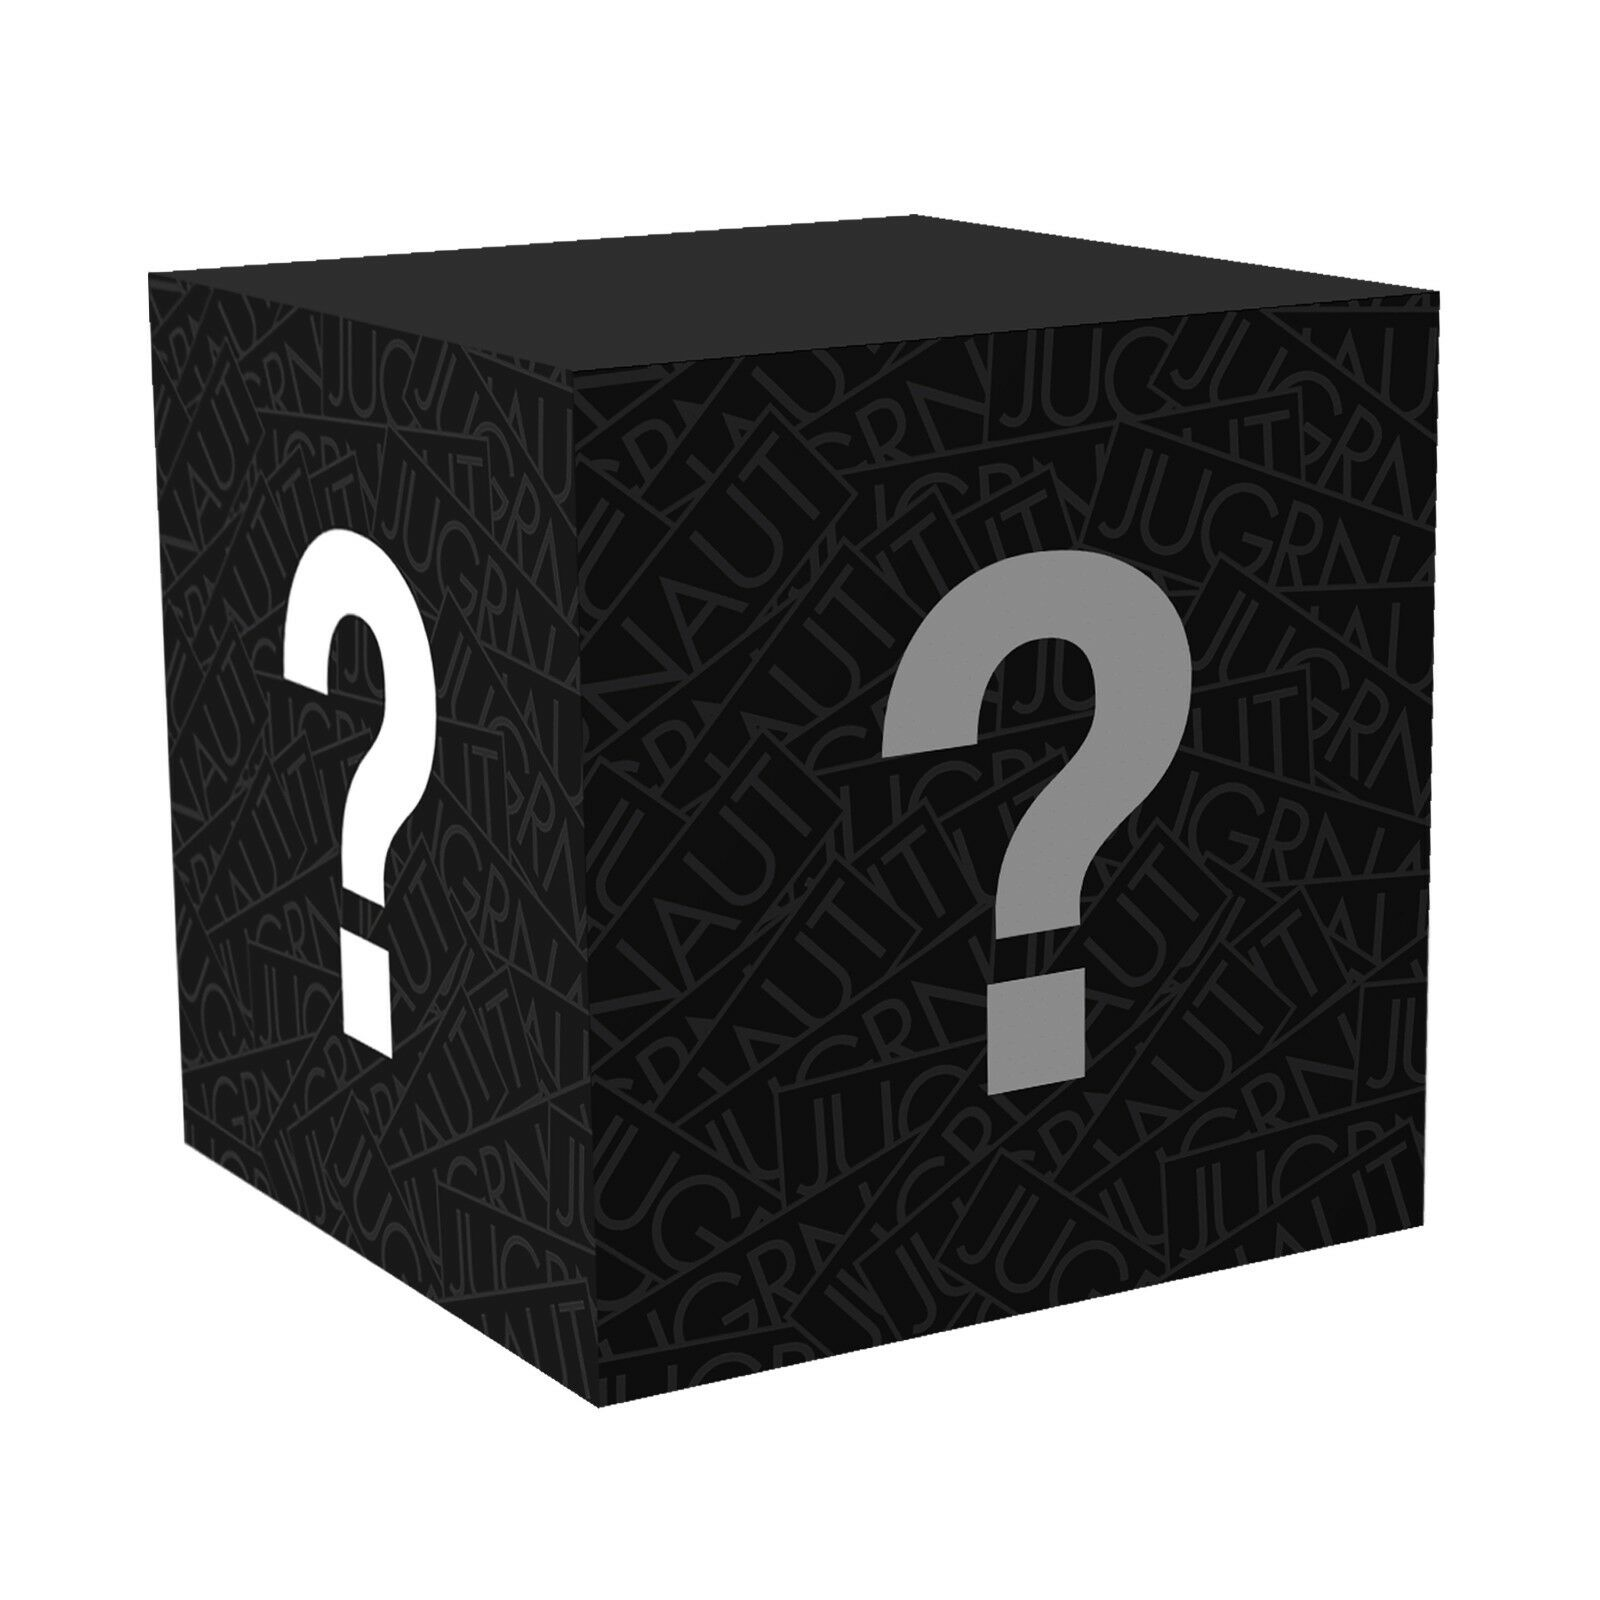 Secret Real Hounted Doll Mistery Box